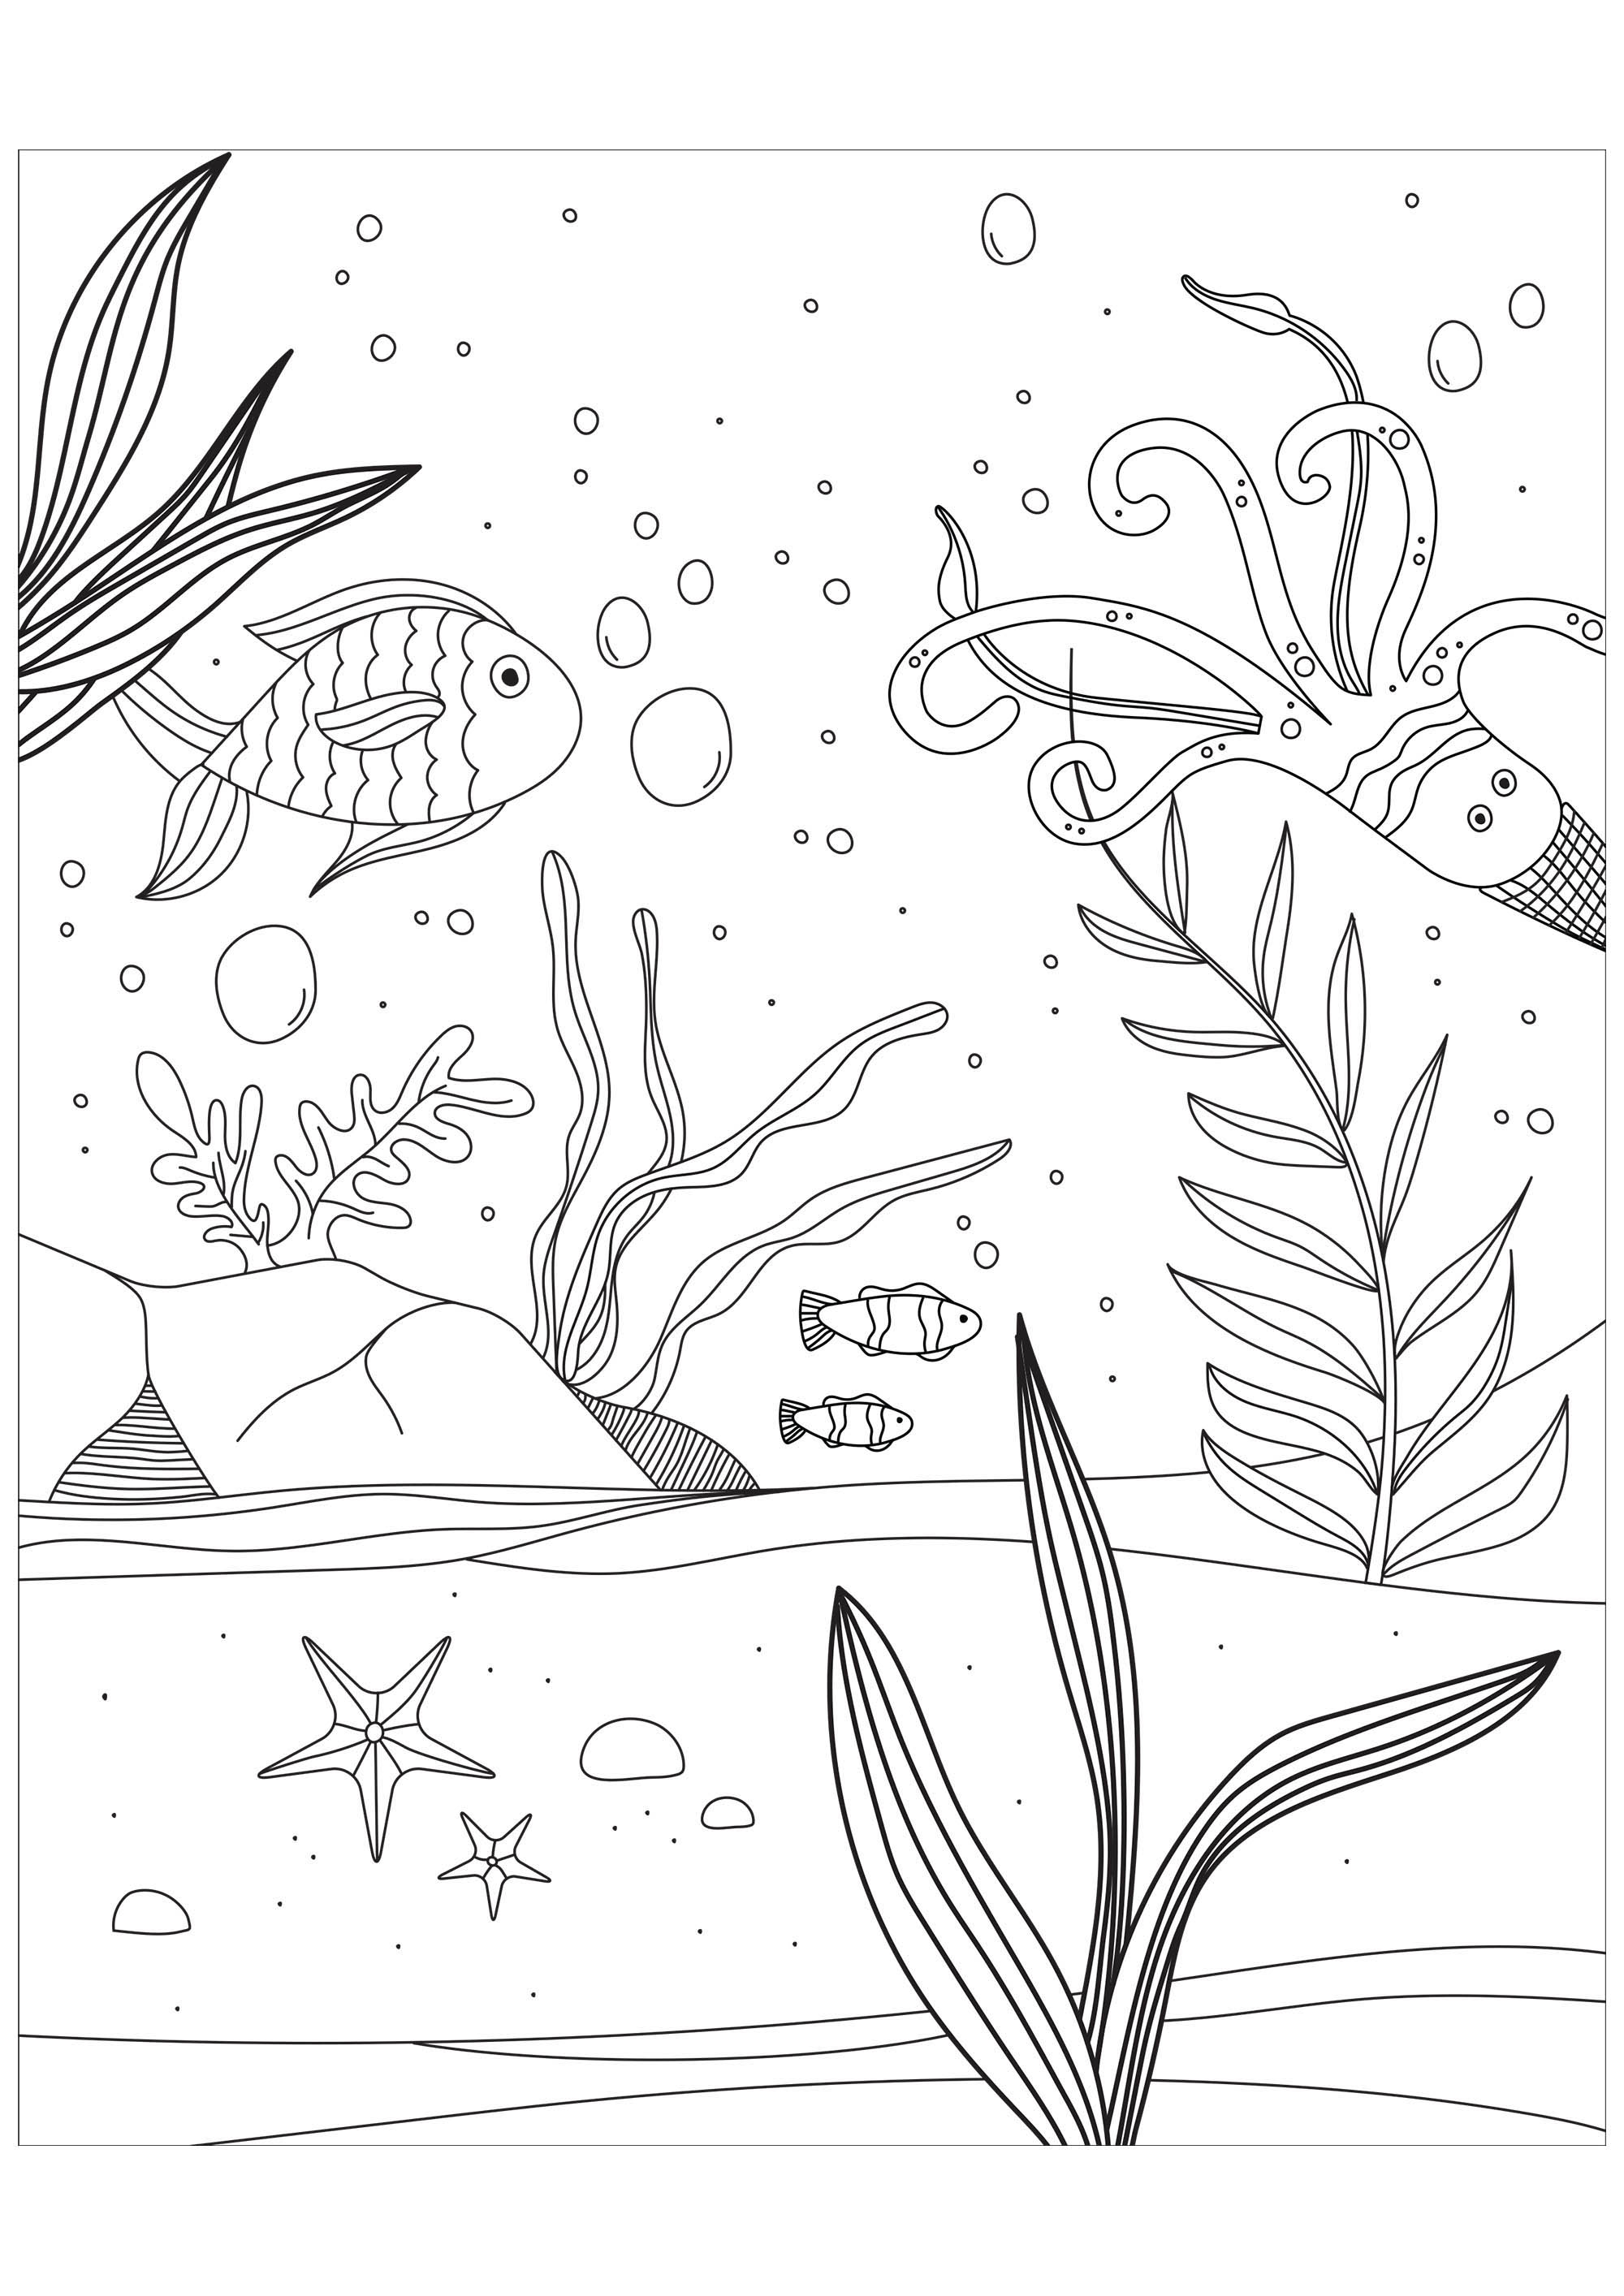 Printable Pisces coloring page to print and color for free